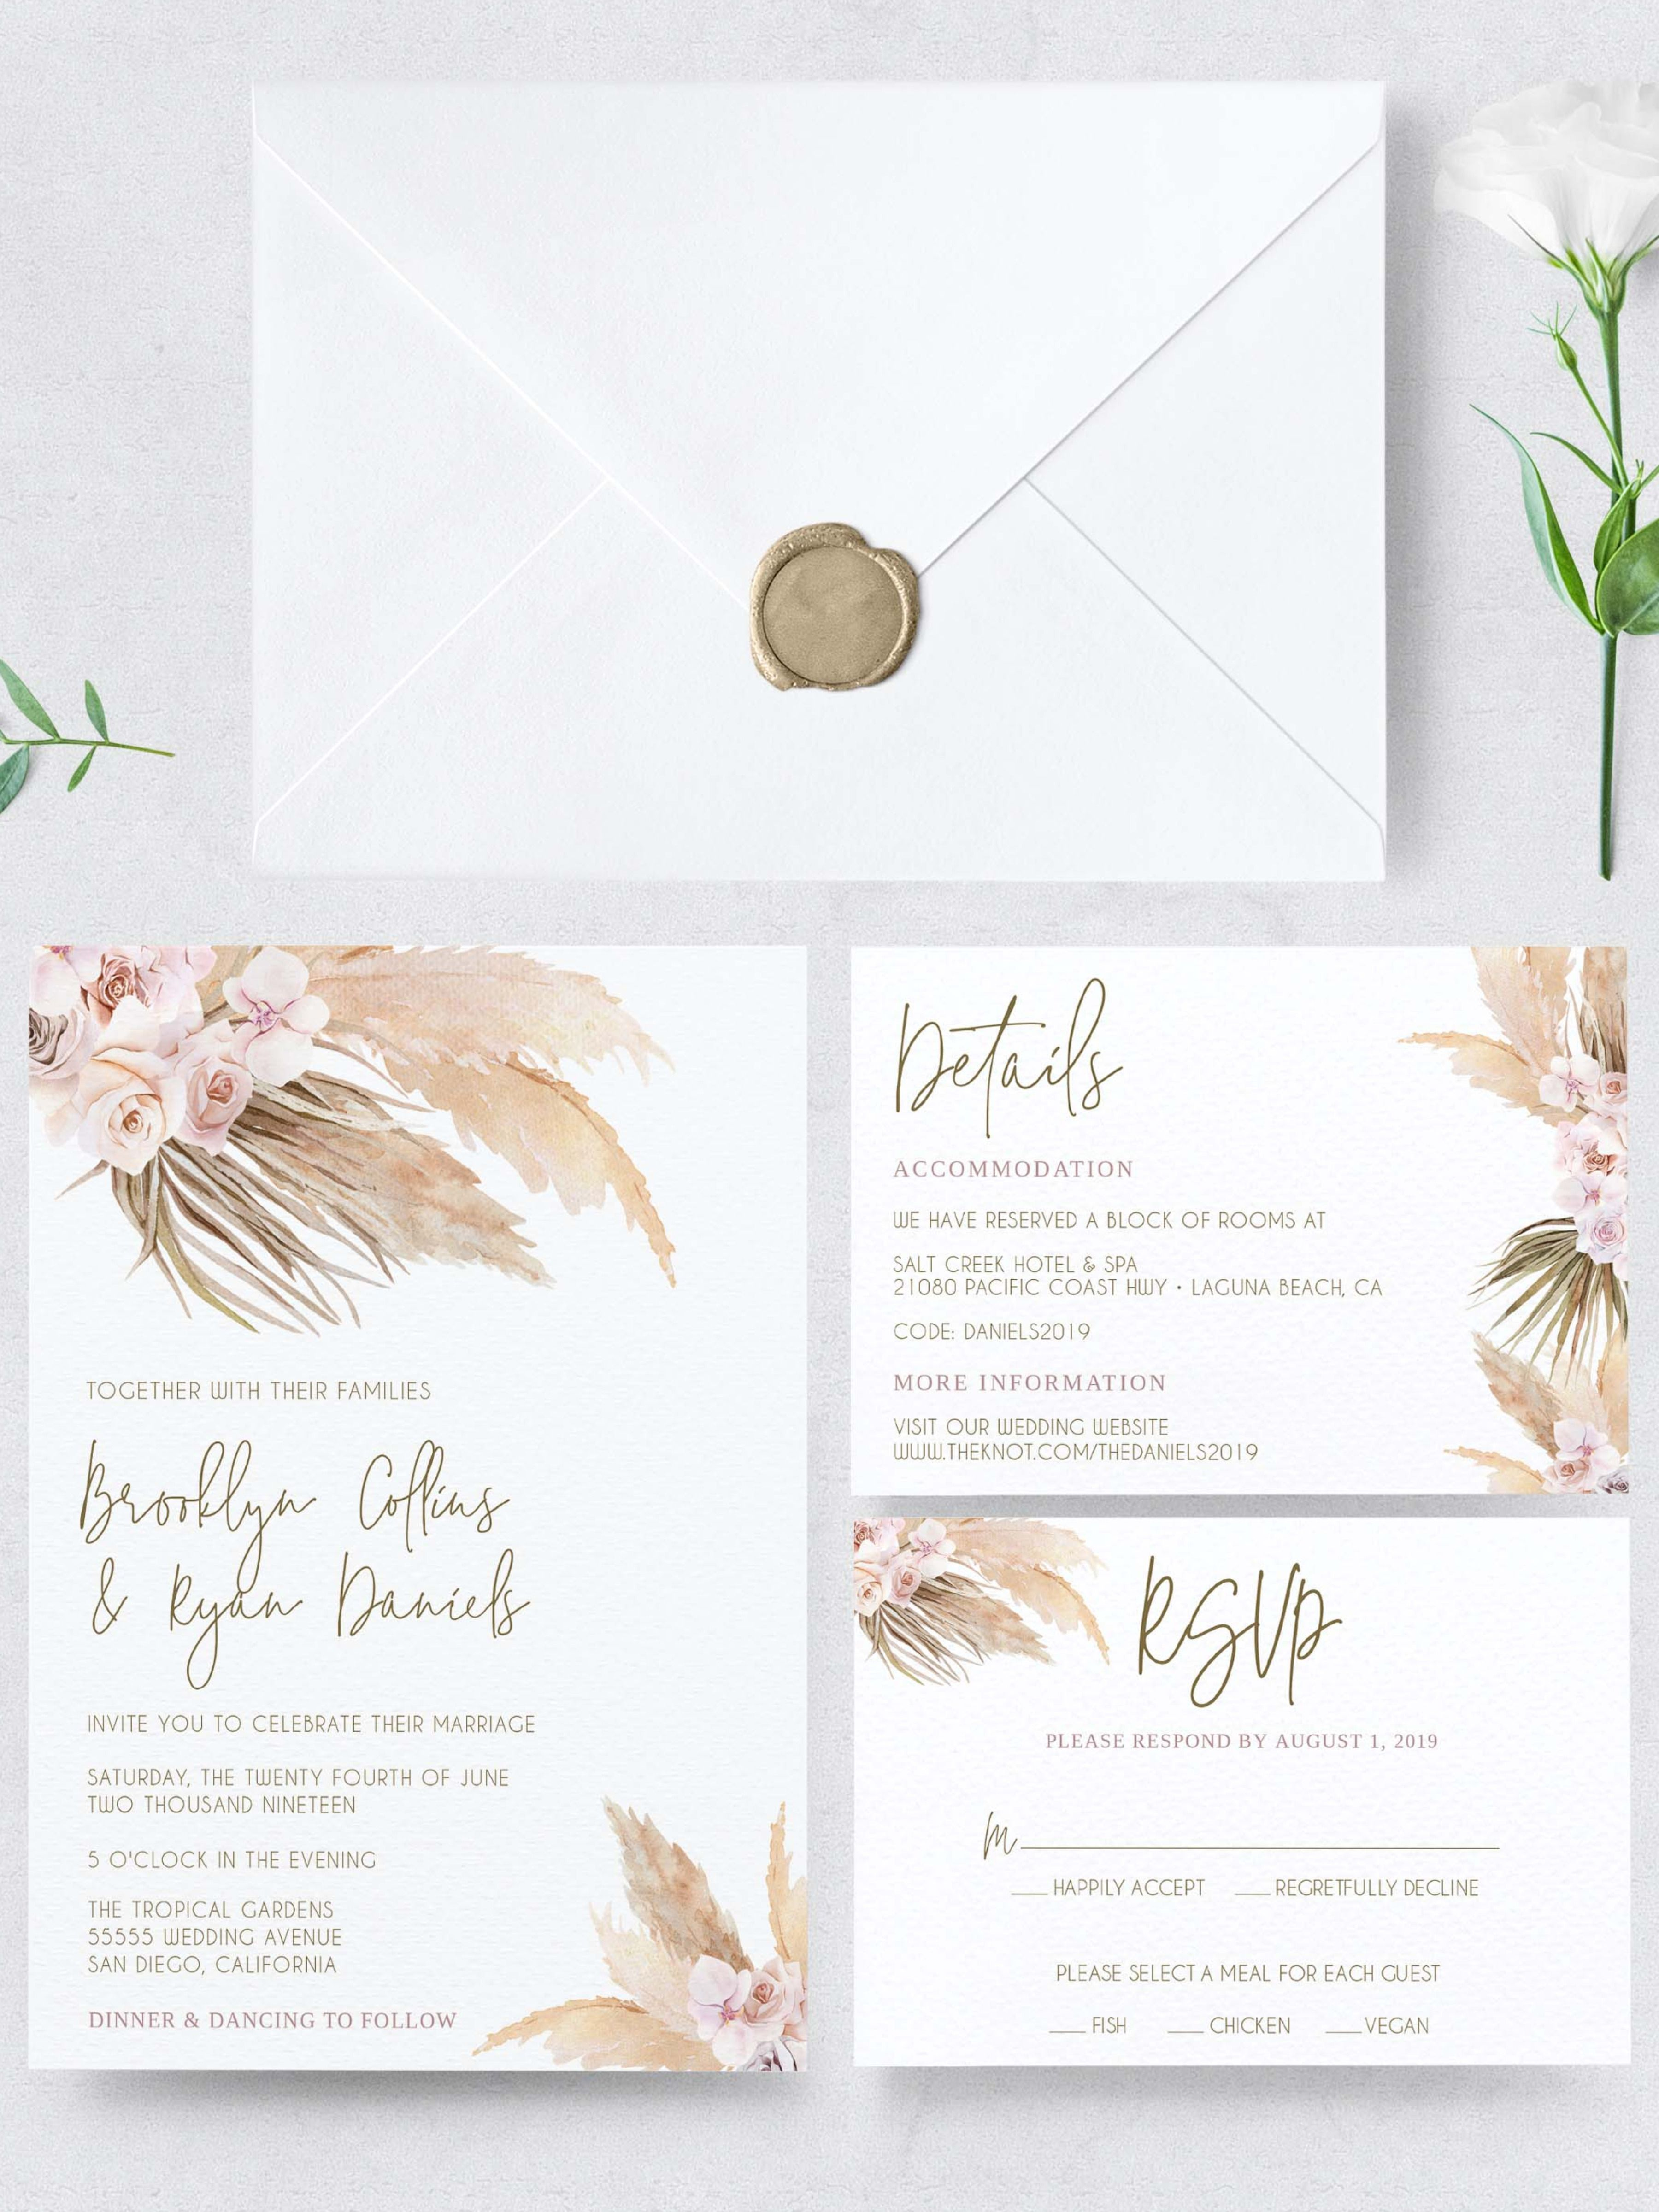 Pampas Grass Wedding Invitation Set Instant Download Template Invite Set Boho Bohemian Editable Template Templett In 2021 Wedding Invitation Sets Wedding Invitation Design Wedding Invitations Boho